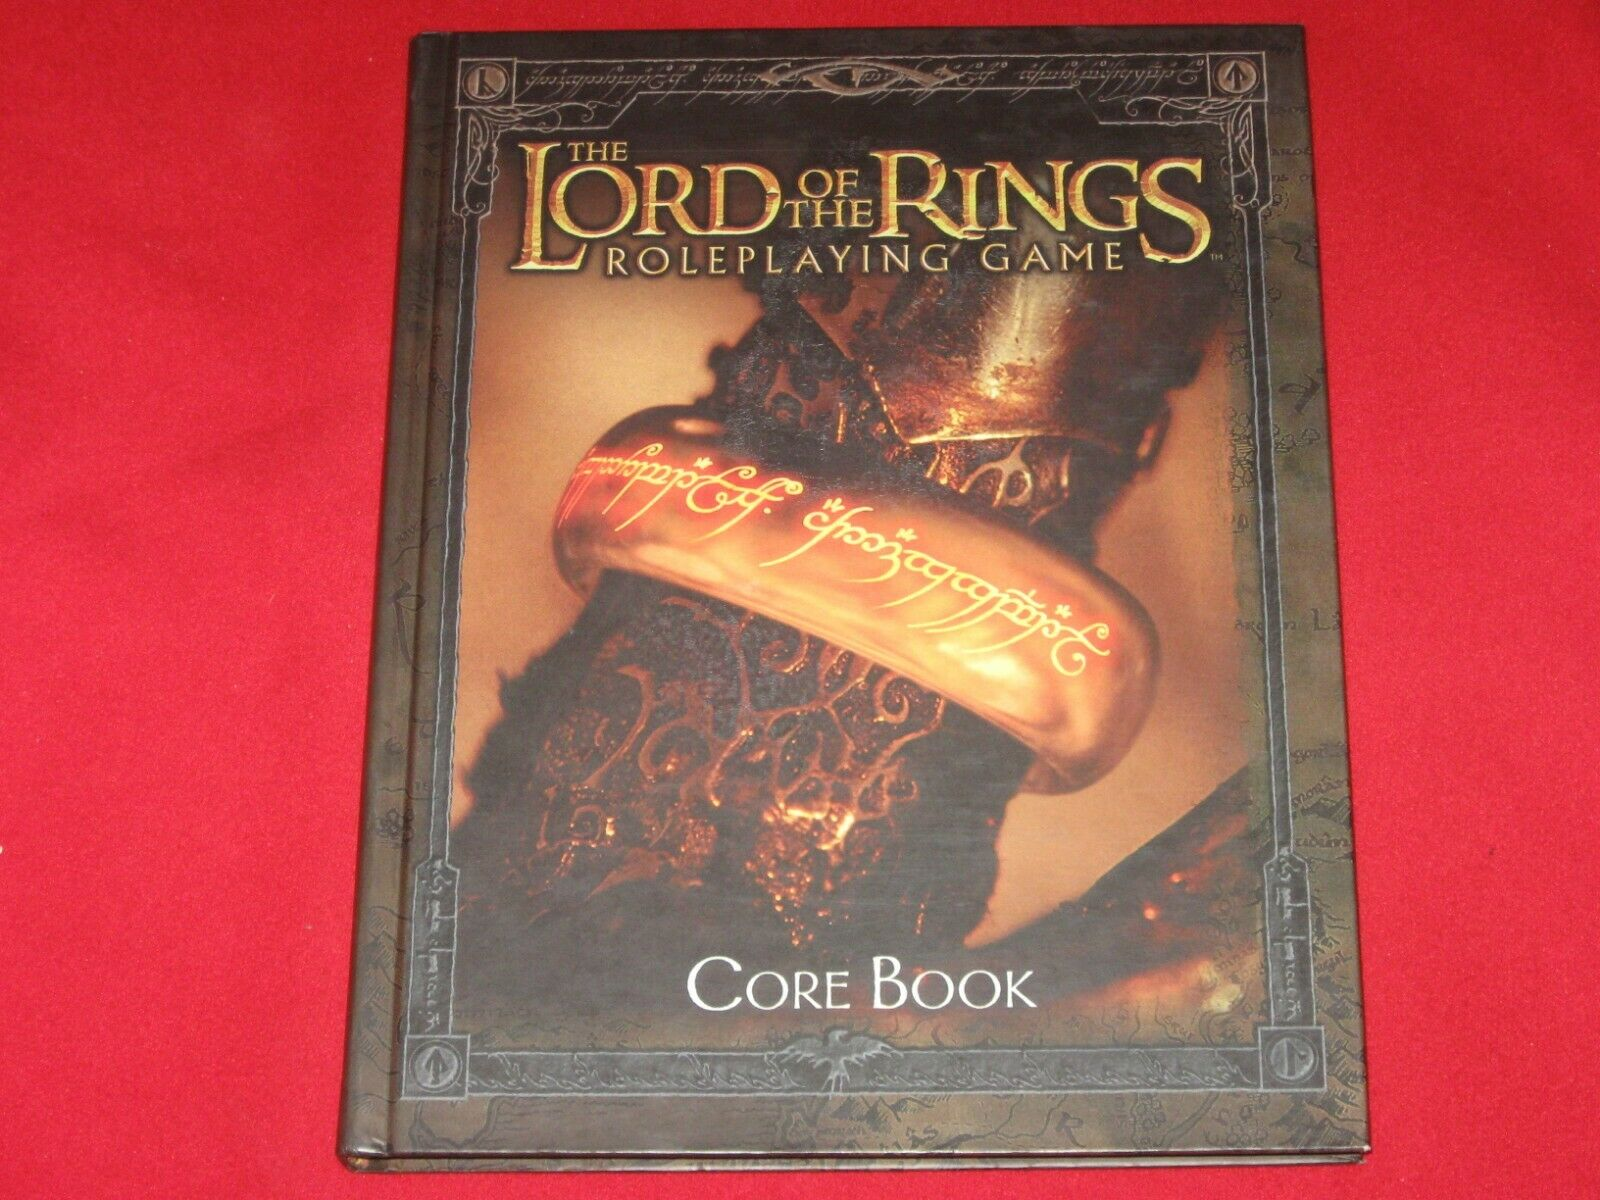 LORD OF THE RINGS ROLEPLAYING GAME CORE BOOK HC J.R.R. Tolkien MERP